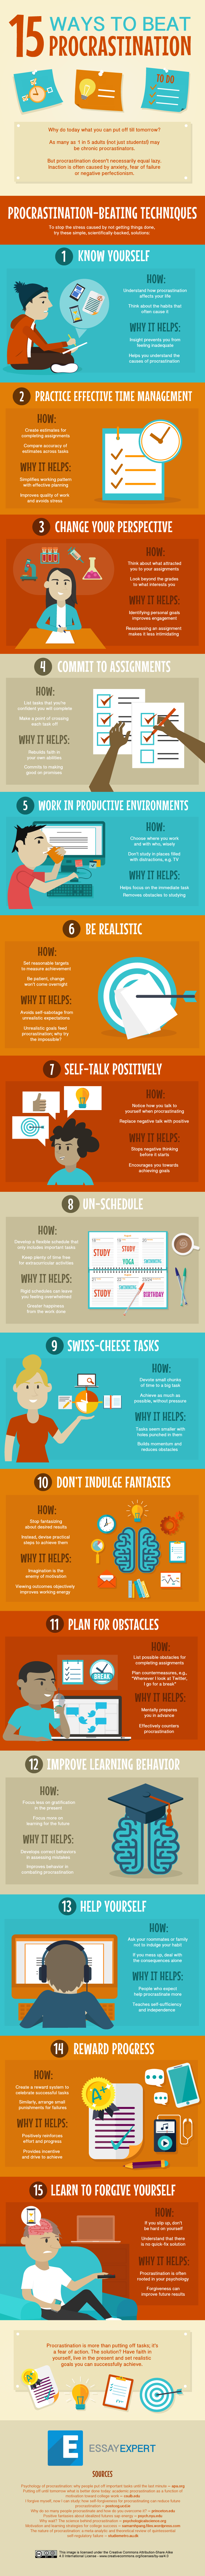 15 Ways to Overcome Procrastination (Infographic)